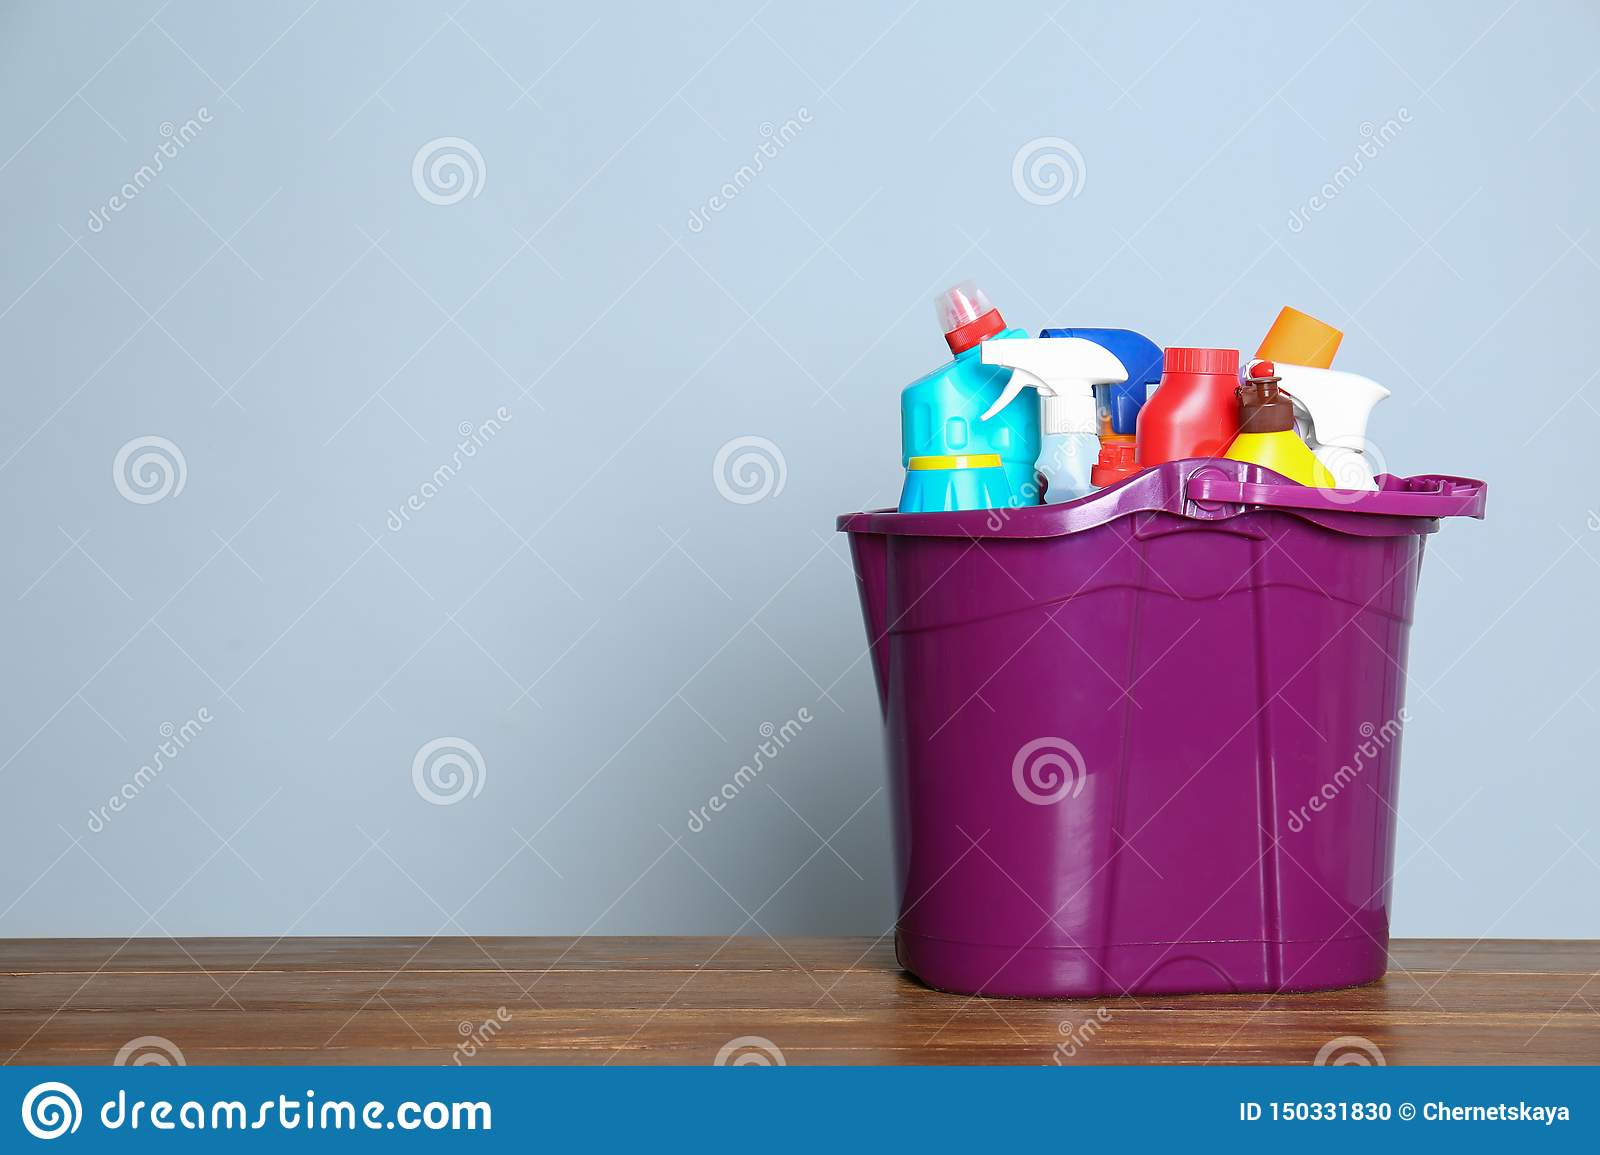 Plastic bucket with different cleaning products on table against color background